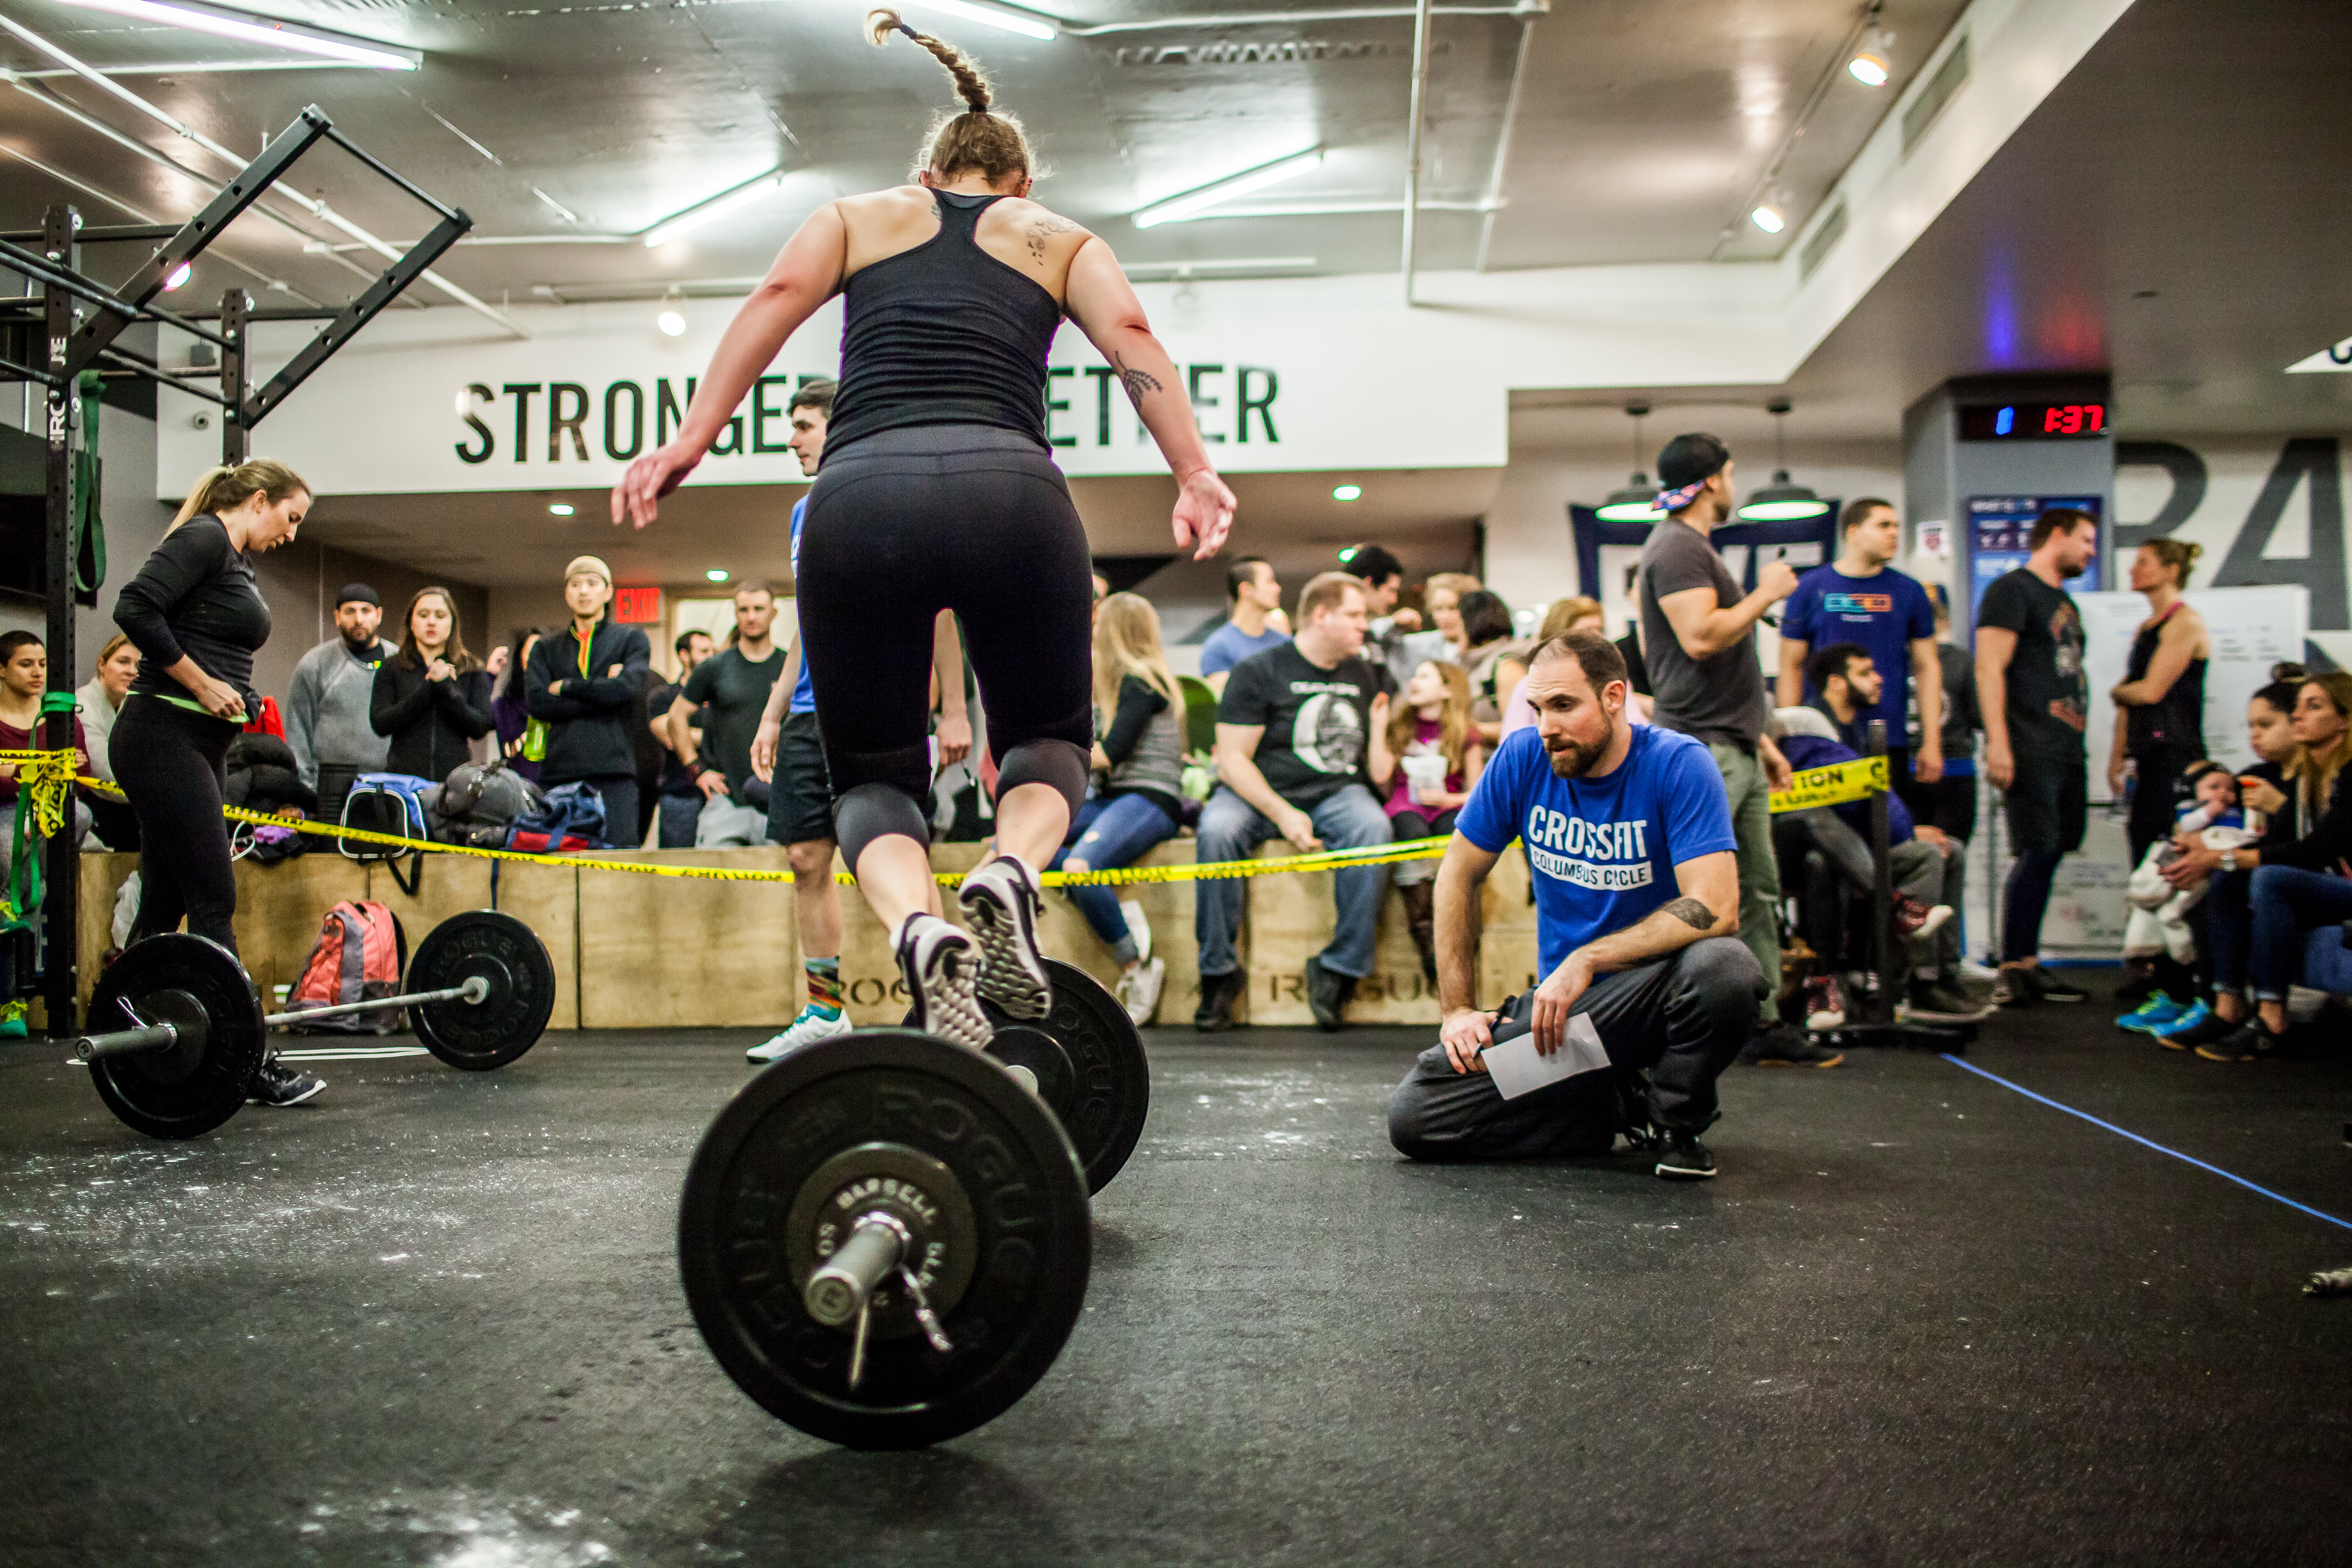 Evf Performance Crossfit Tuesday August 8 Workout Of The Day Training Workouts For Beginners Wod Mobility Those You Who Are Mastering Strict And Kipping Pull Ups Might Want To Try Chest Bar Up